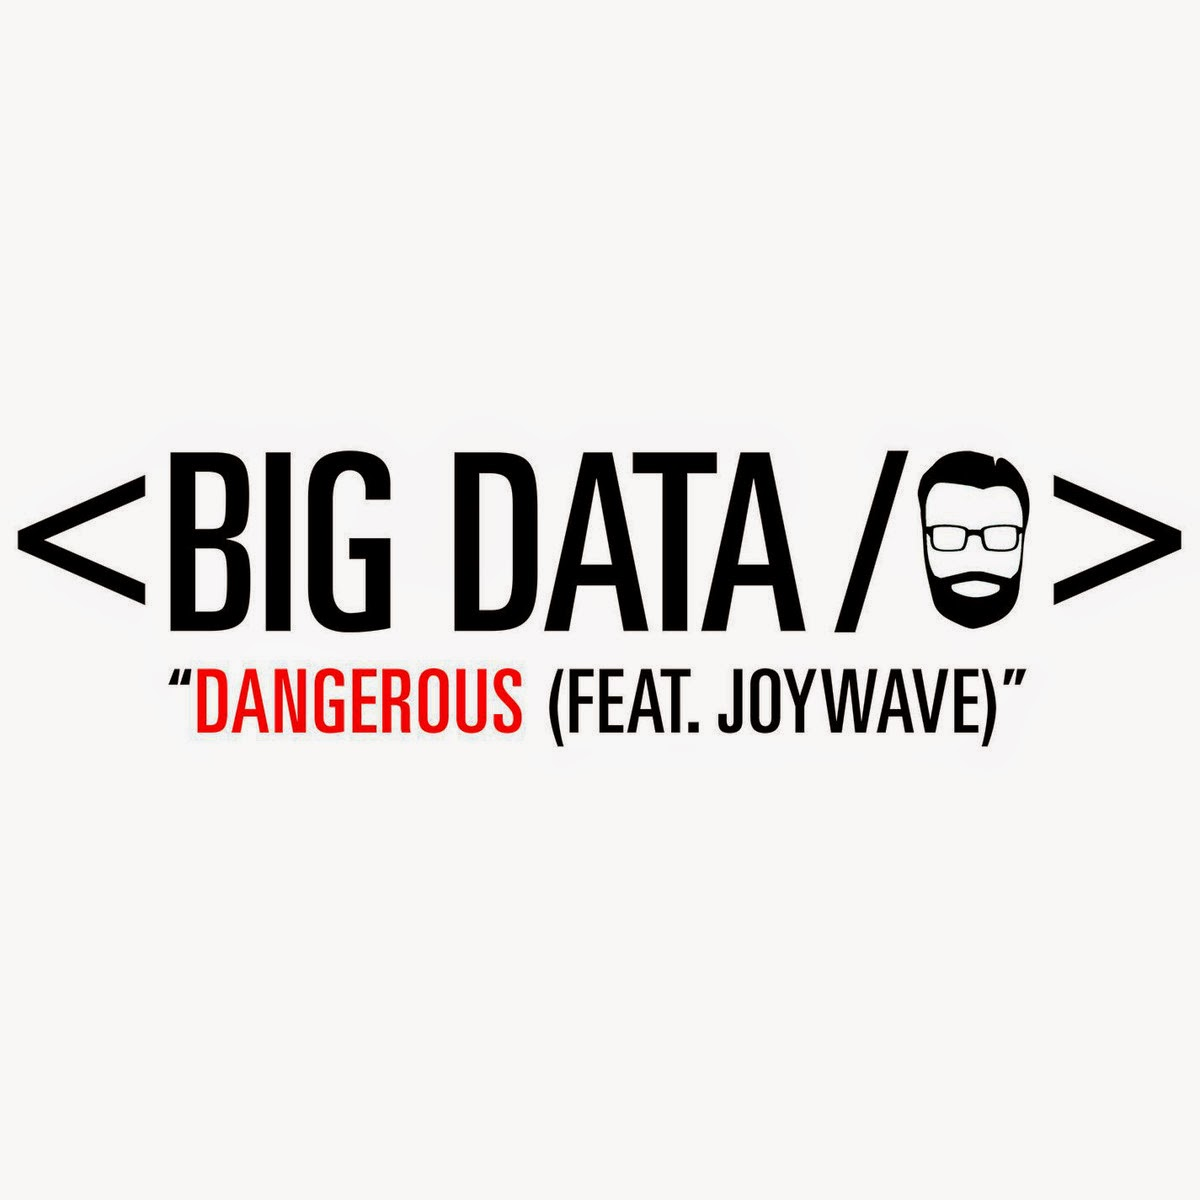 Song Review} Dangerous by Big Data Sounds Like Only by Nine Inch ...